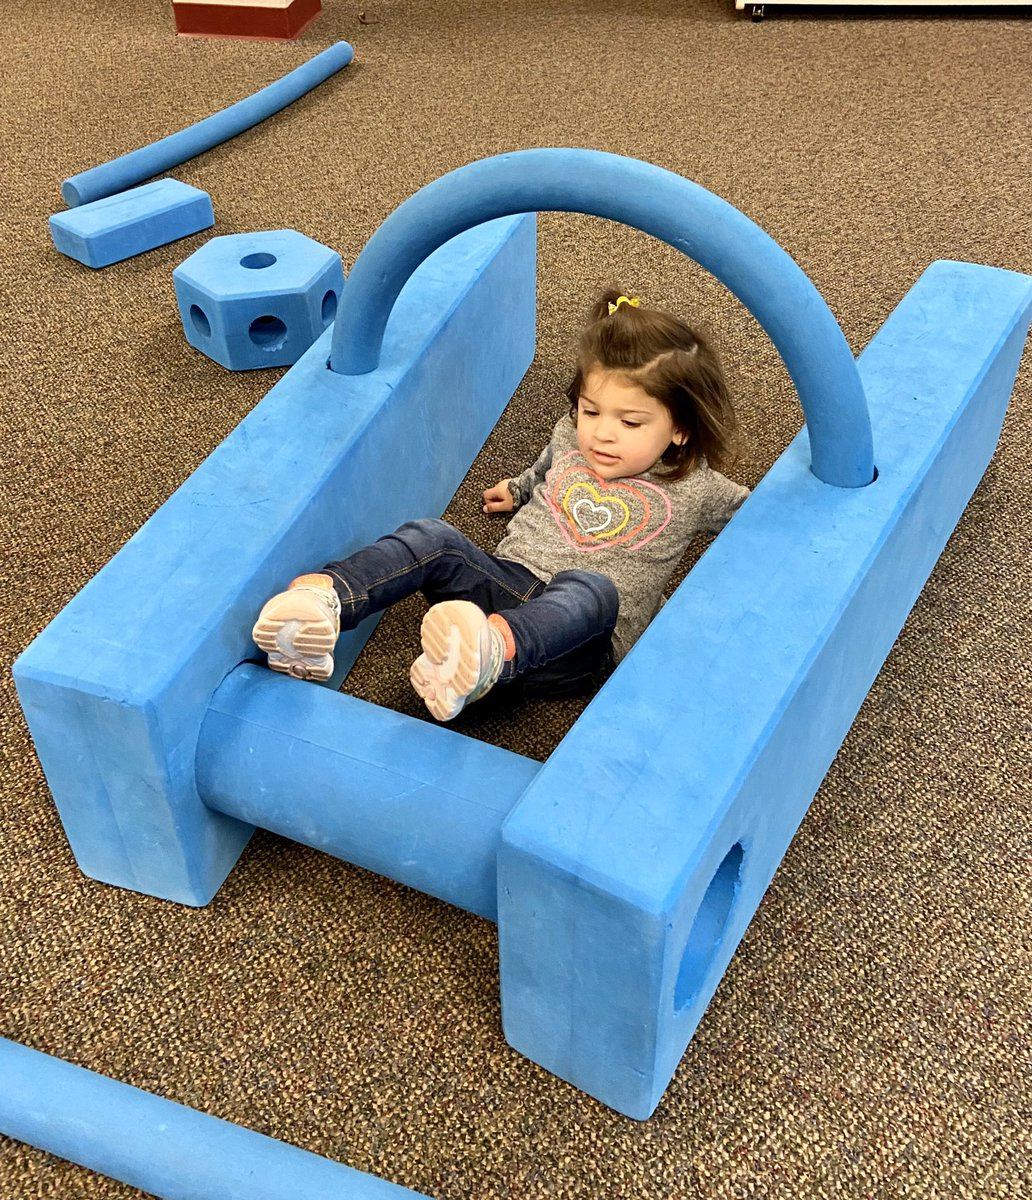 What a fun Friday for our young friends as they let their creativity shine at today's Imagination Playground! 😄 #rvclibrary #Libraries #Imagination #Play #LibraryFun